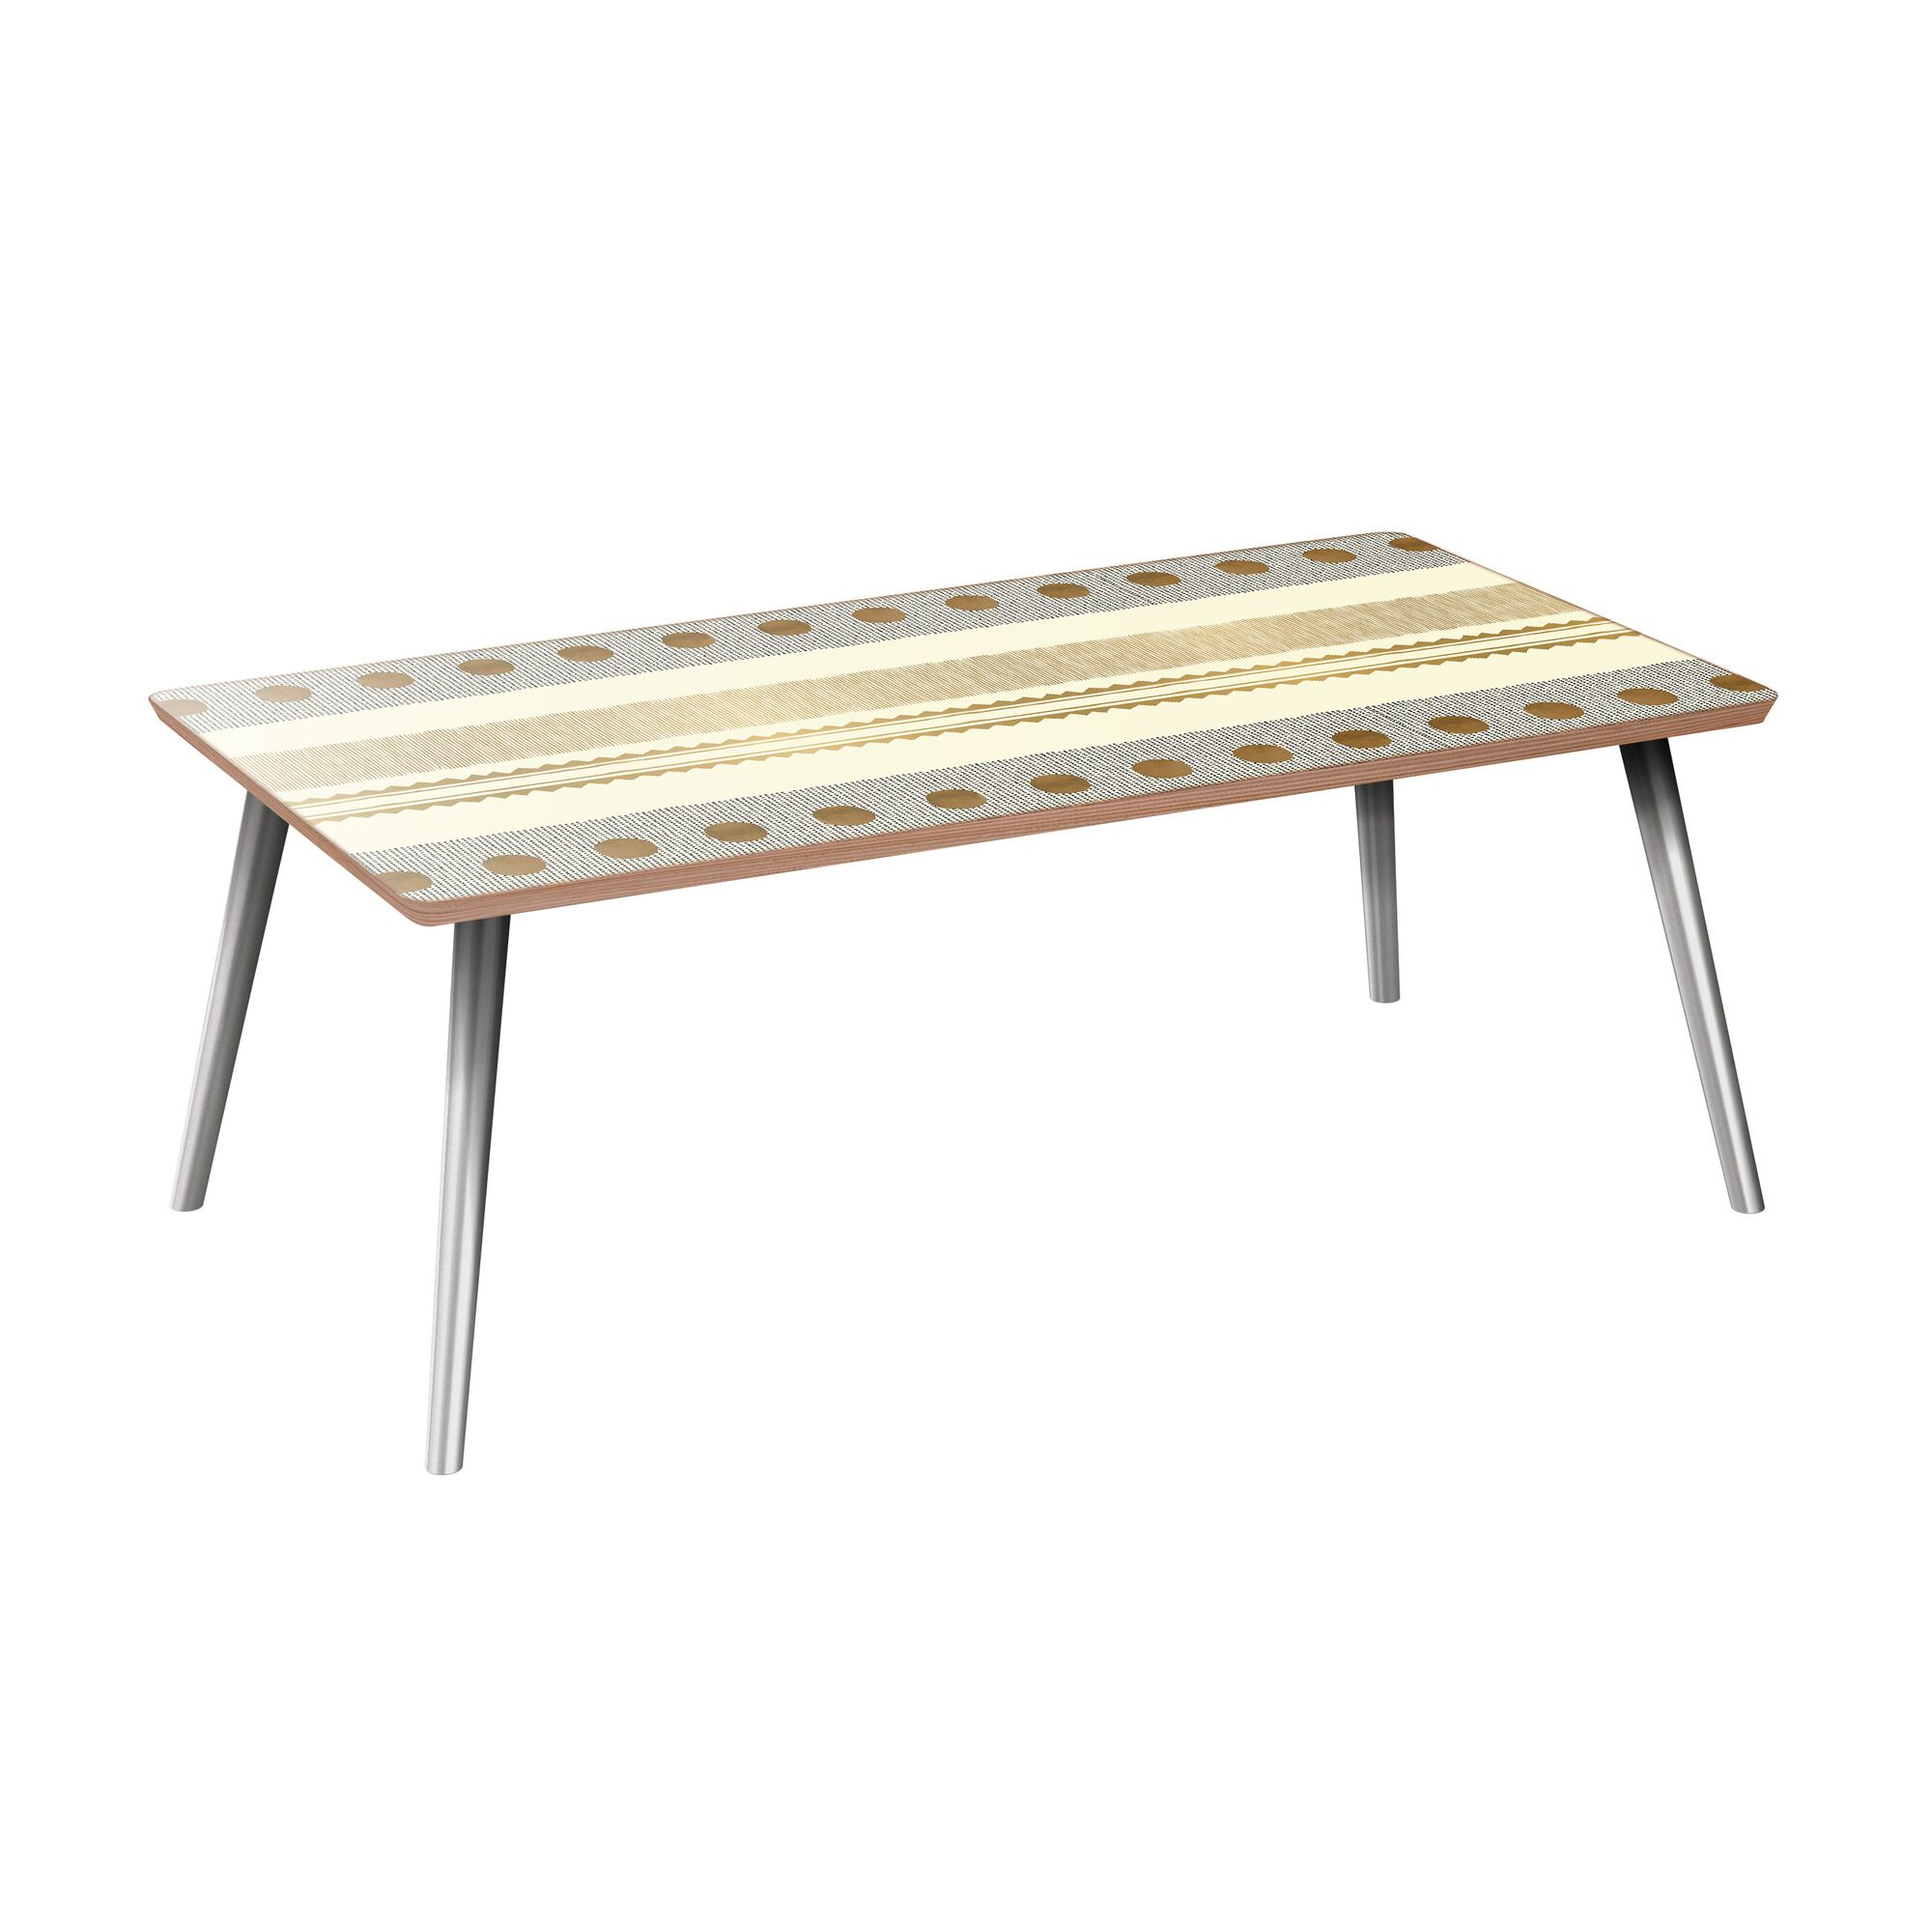 Hulsey Coffee Table Table Base Color: Chrome, Table Top Color: Walnut